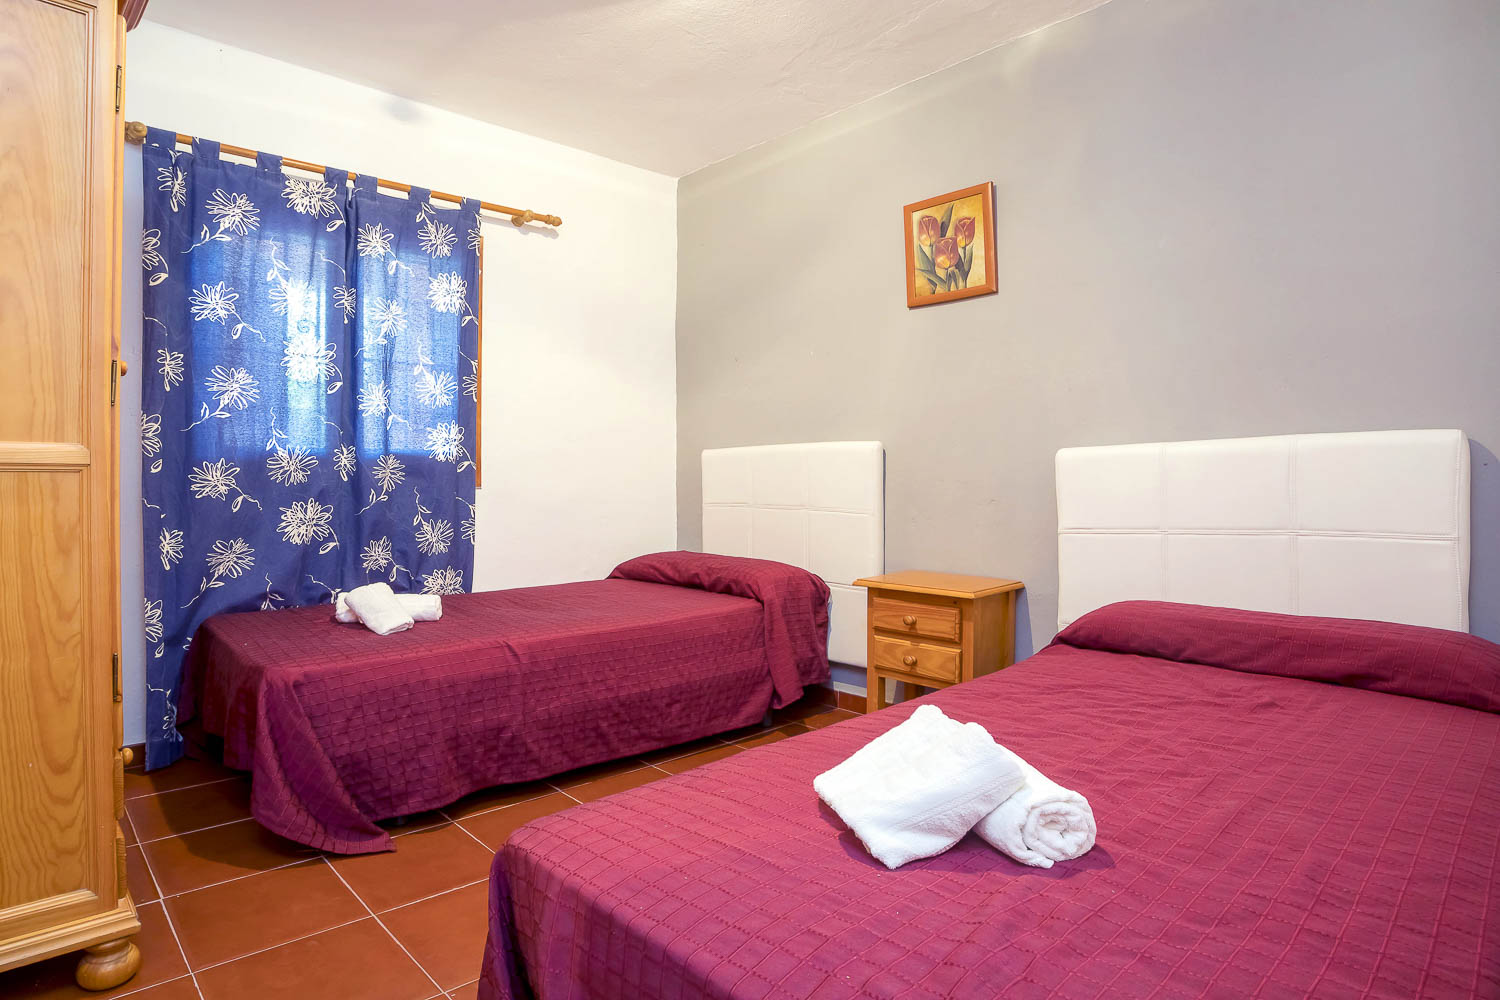 Double and a single bed in a room of a rental house in Ibiza